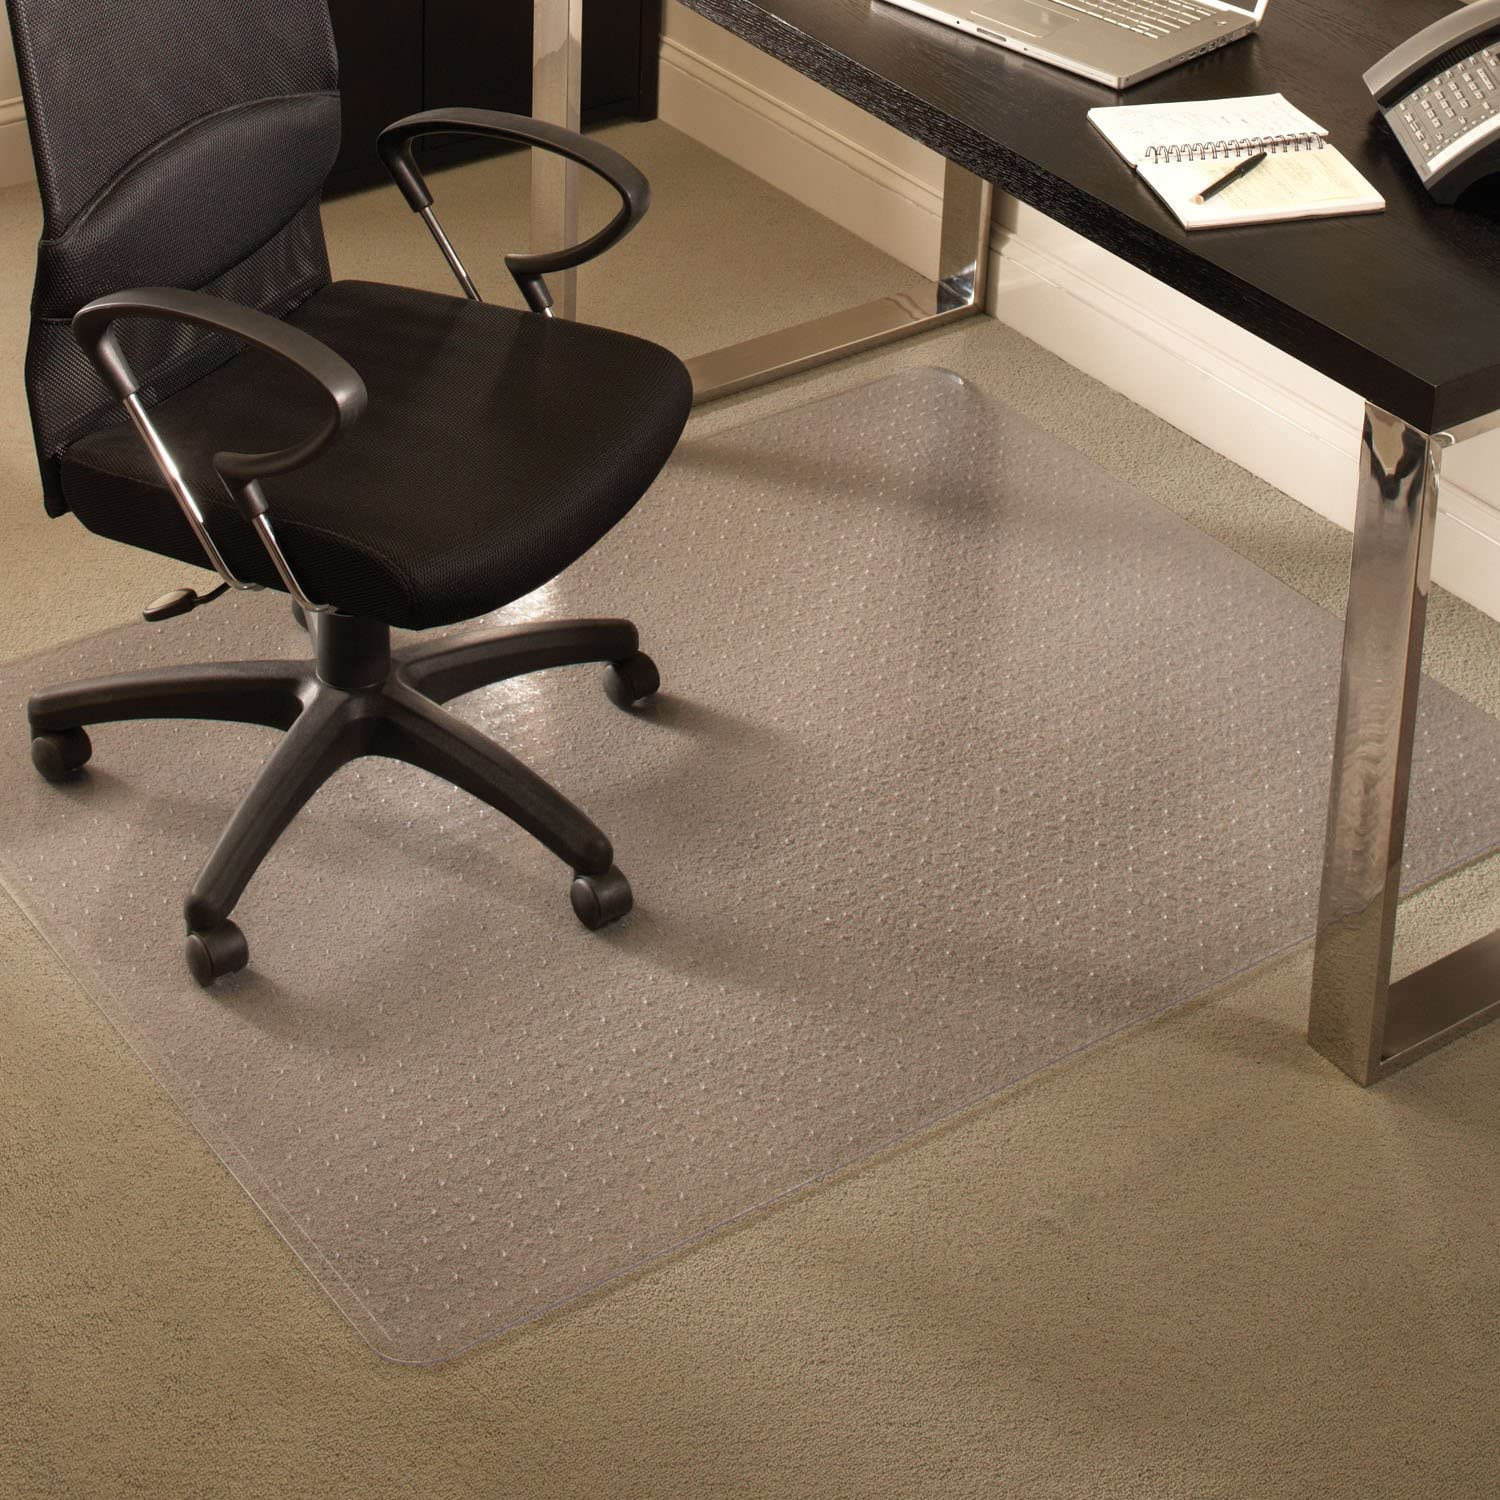 lowest price ES Robbins Everlife Carpet Mat Surprise price Clear Chair 48